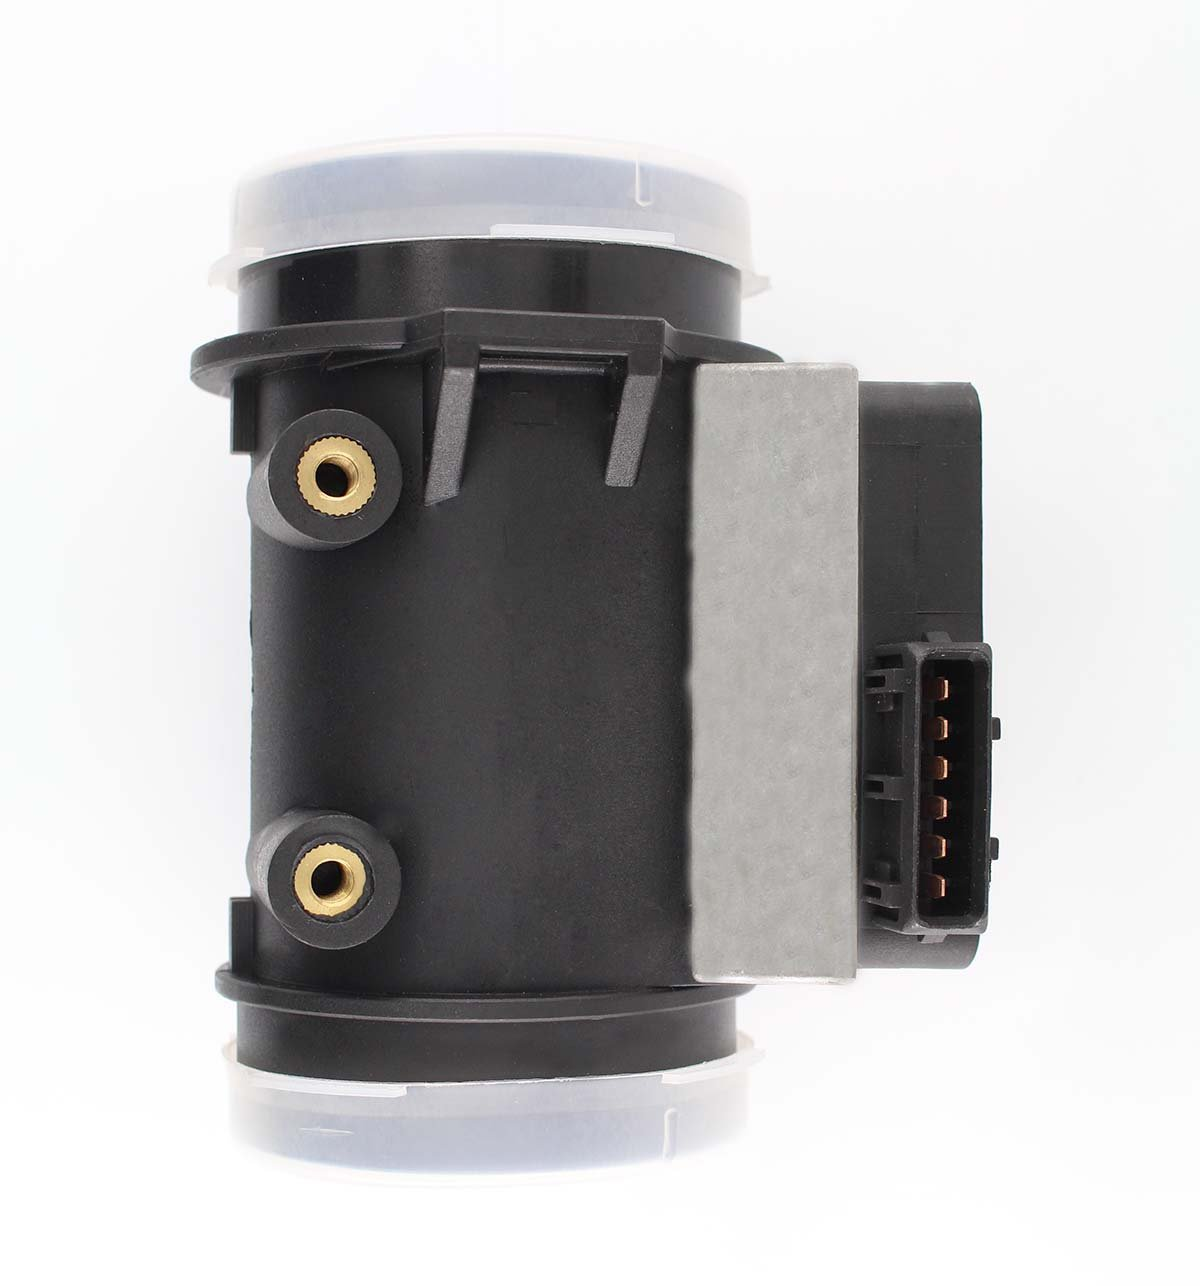 Amazon.com: XtremeAmazing Mass Air Flow Meter Sensor For Volvo 740 760 780 940 244 Replace OE Part Number 0280212016 8602792 3517020 8251497 5517020: ...